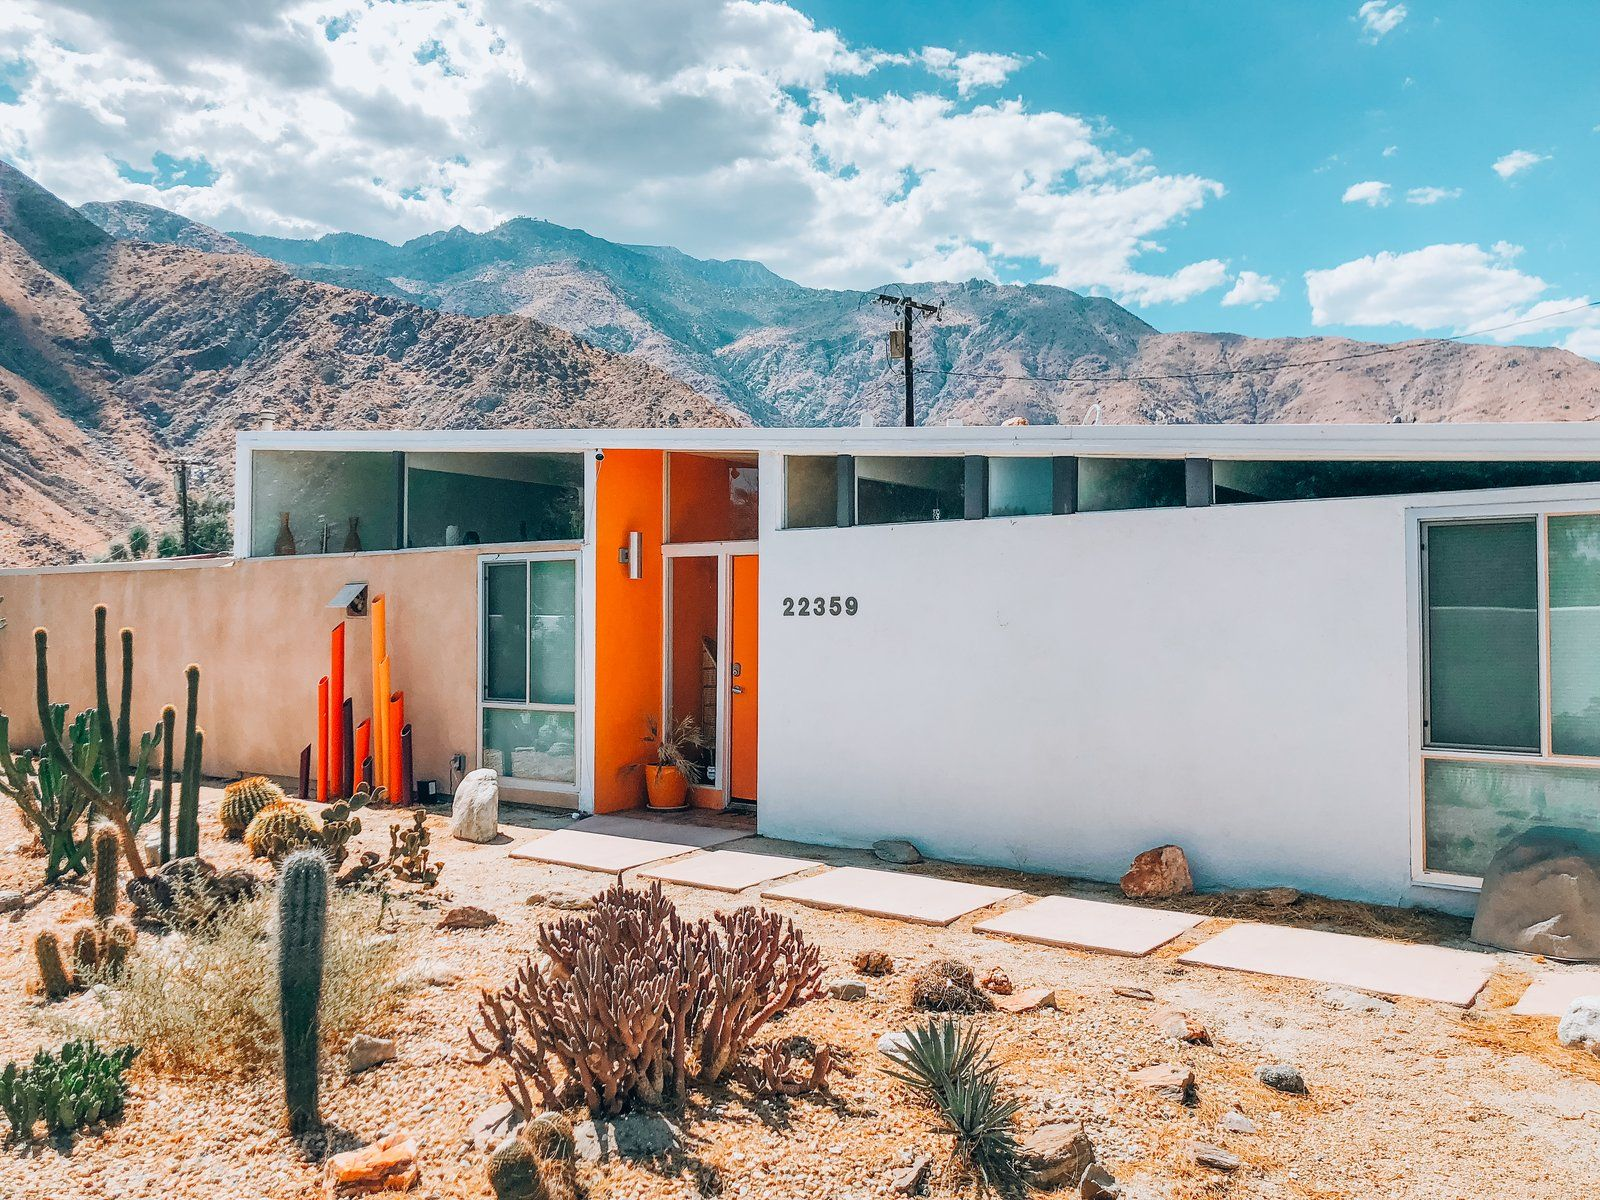 Photo 1 Of 12 In Immerse Yourself In Bright Color At This Midcentury Palm Springs Mid Century Modern Palm Springs Houses Palm Springs Architecture